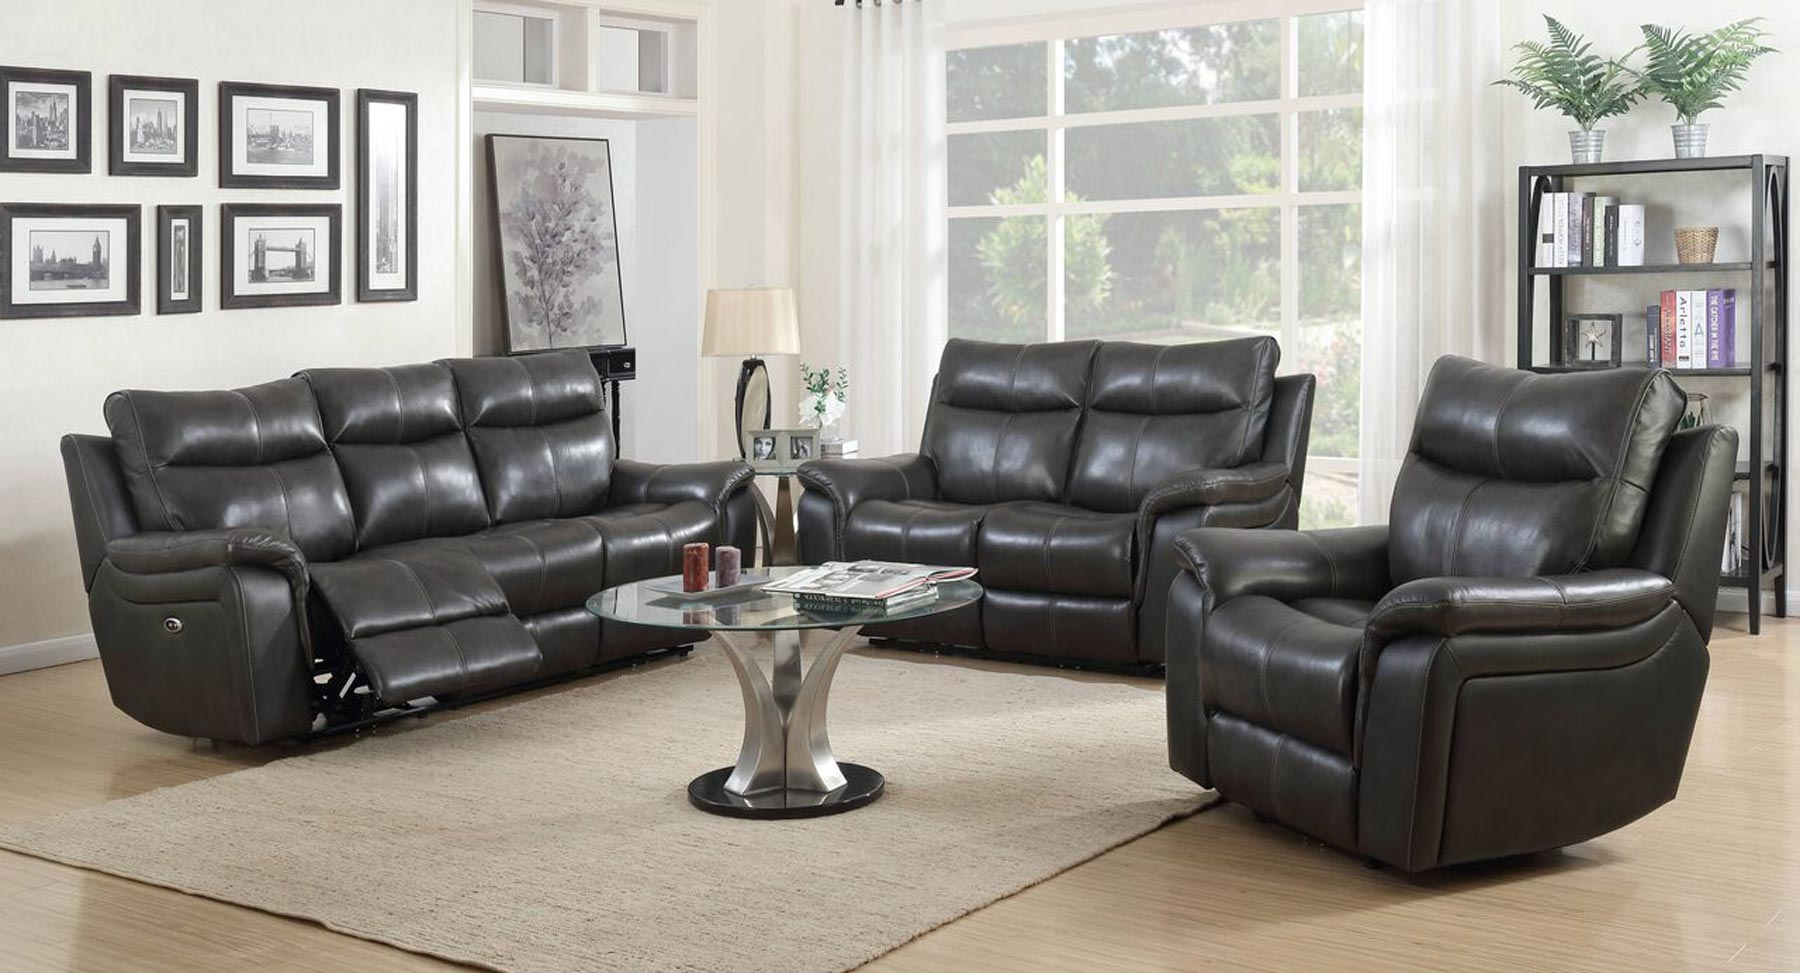 Armando 3 piece living room set gonzalez furniture for 3 piece living room furniture